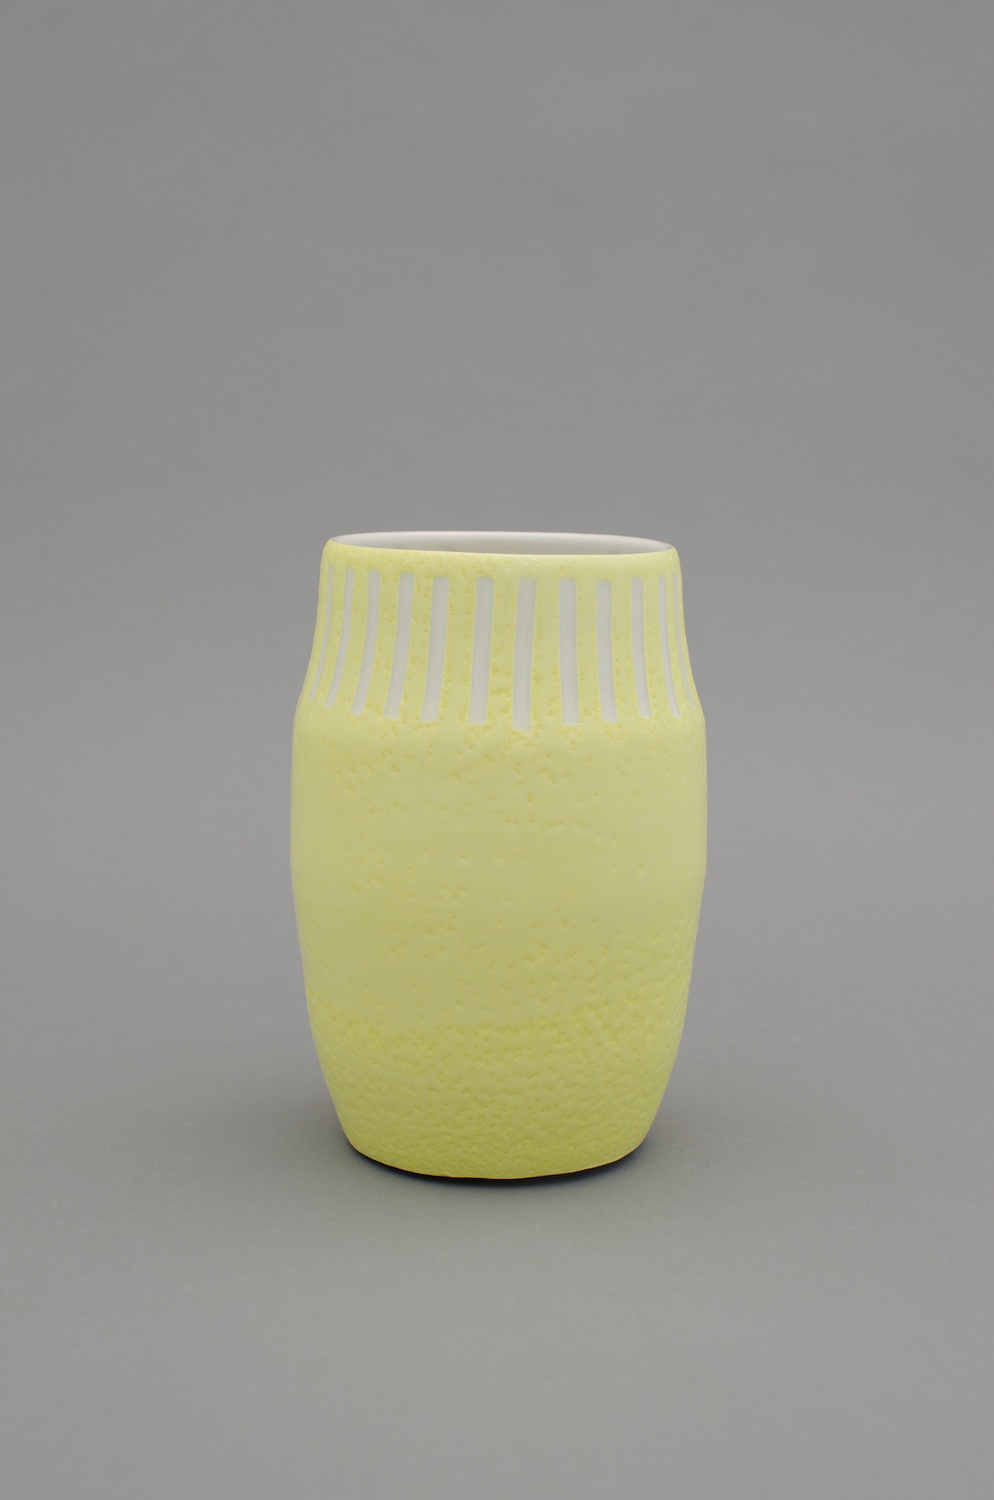 Shio Kusaka  Untitled (mark 21)  2012 Porcelain 7 ¼h x 4 ¾w x 4 ¾d in SK385